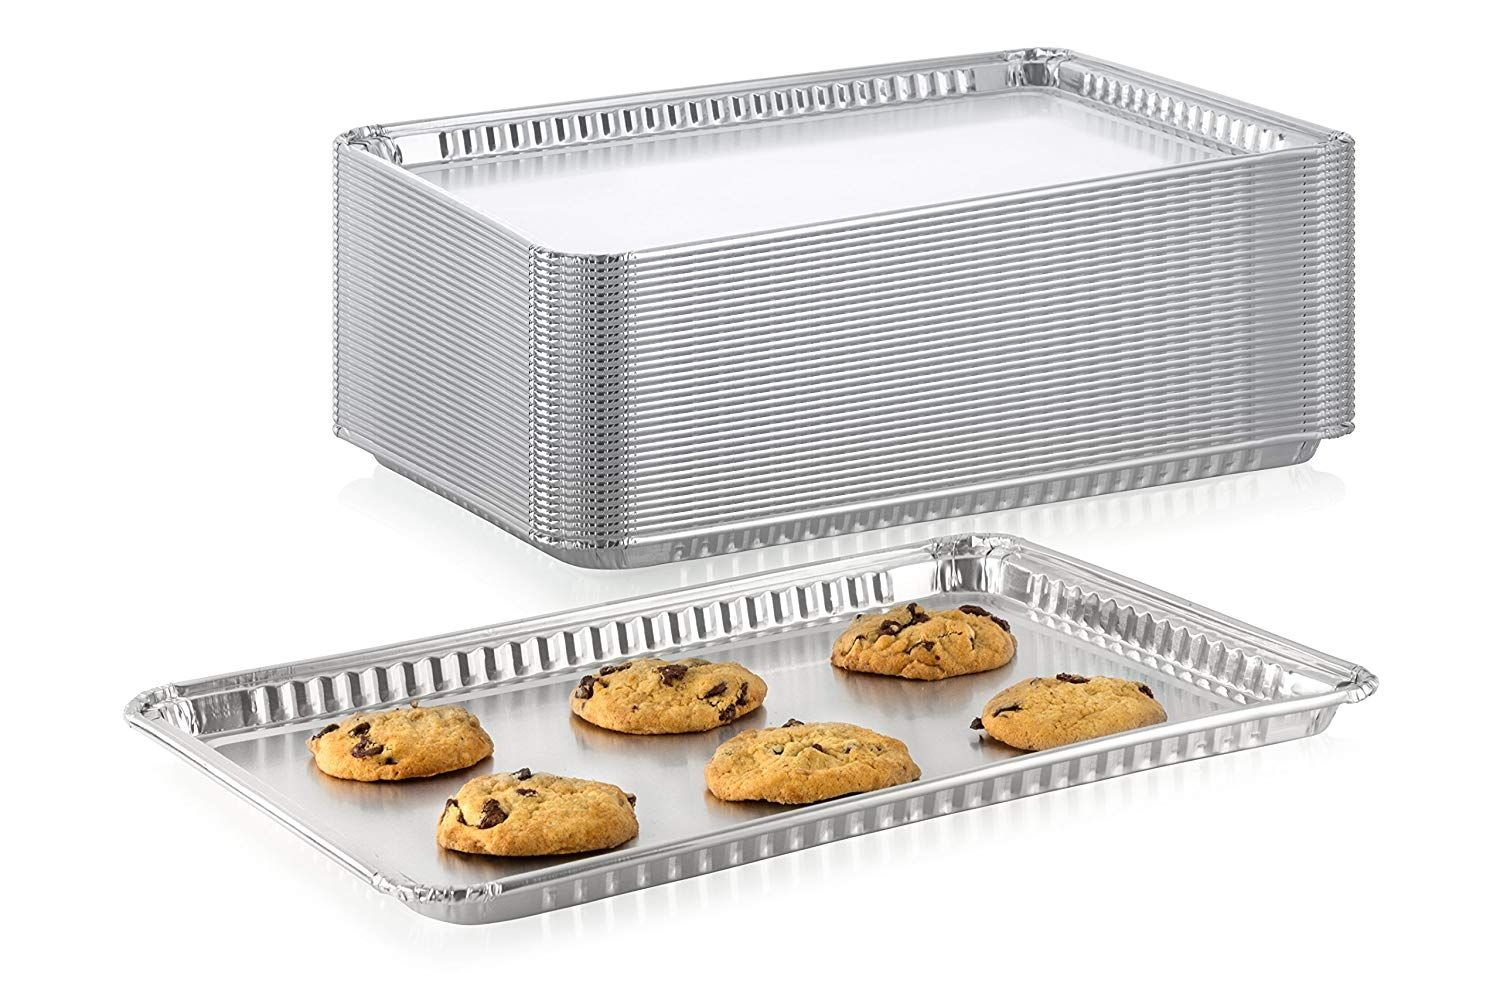 Pack Of 10 Durable Aluminum 1 2 Half Size Sheet Baking Pan Super Strong Disposable Foil Baking Tins Ideal Portable Food Food Storage Containers Baking Pans